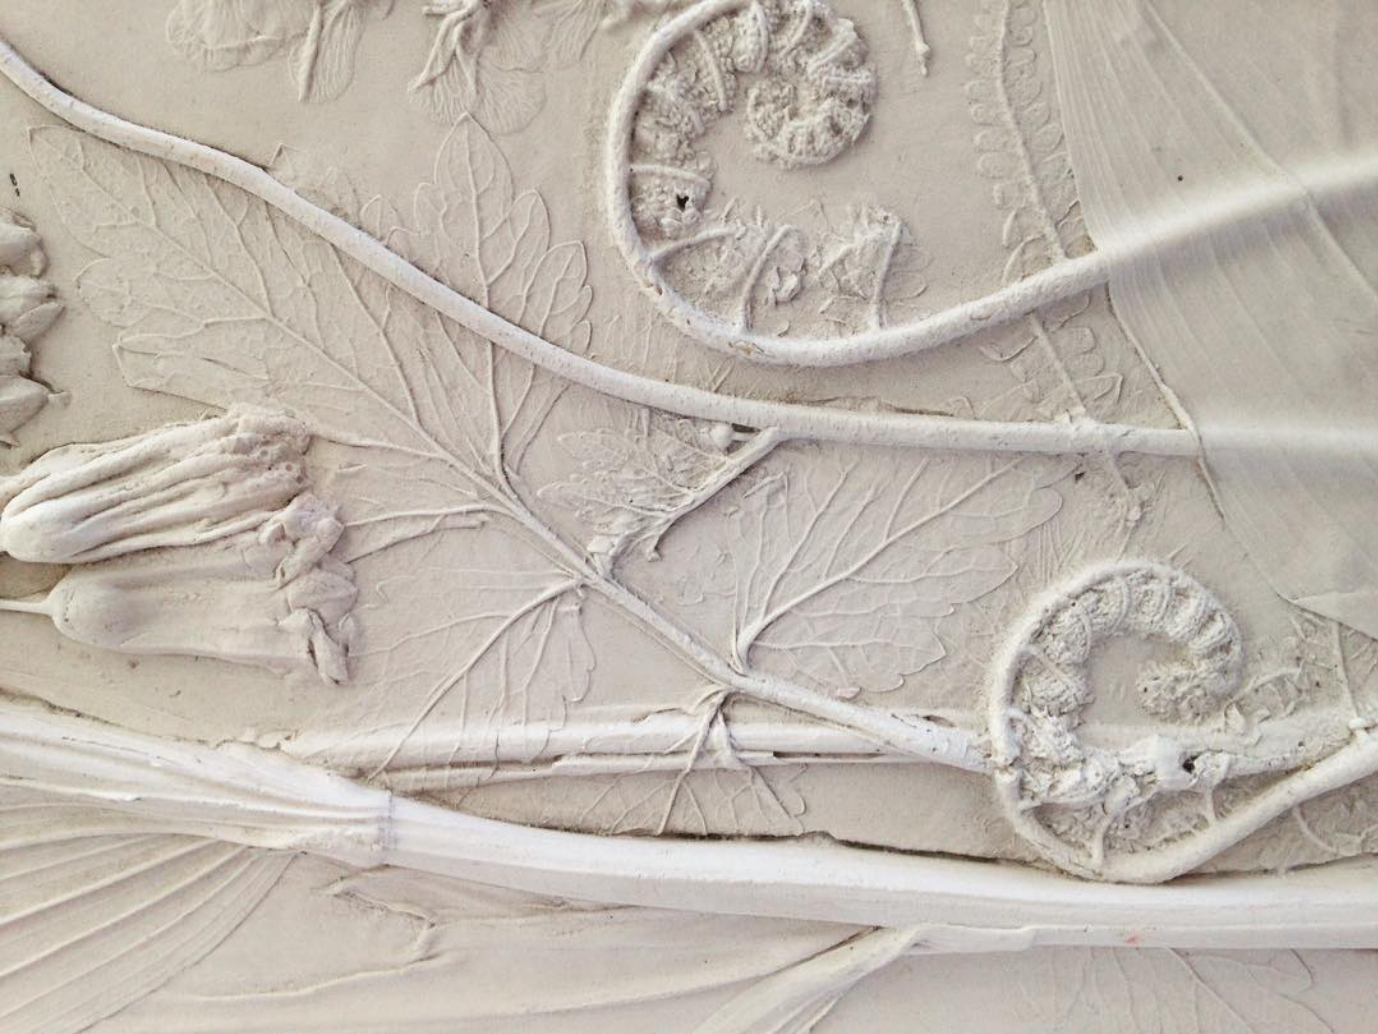 Ferns and Solomon's Seal, plaster panel. Photo courtesy of the artist.